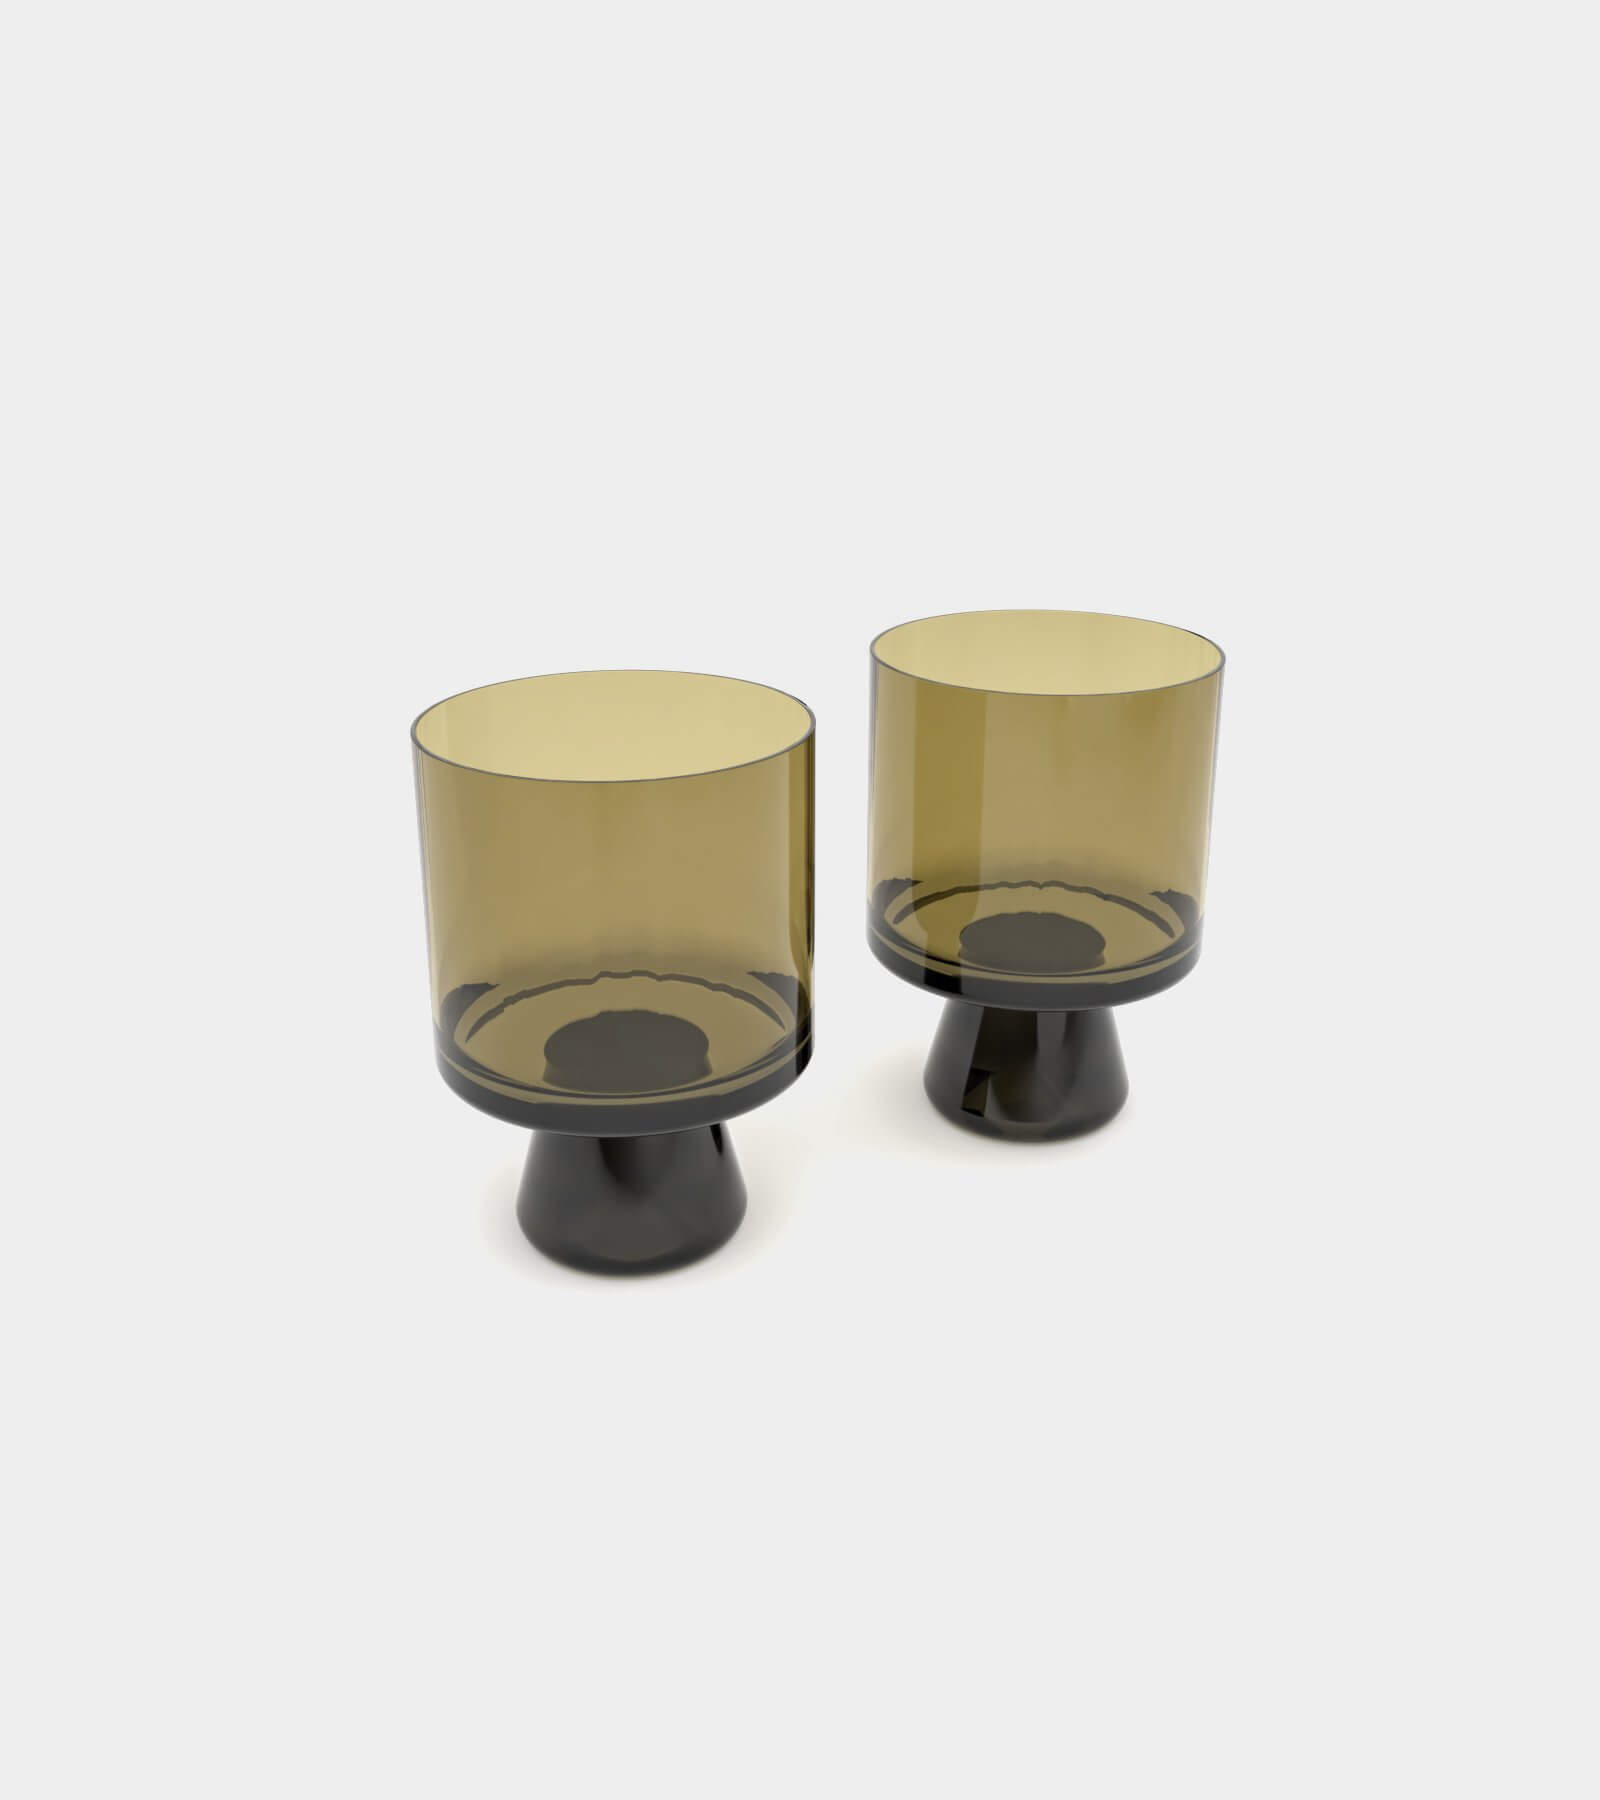 Tank low ball glasses black and yellow gray 2 - 3D Model